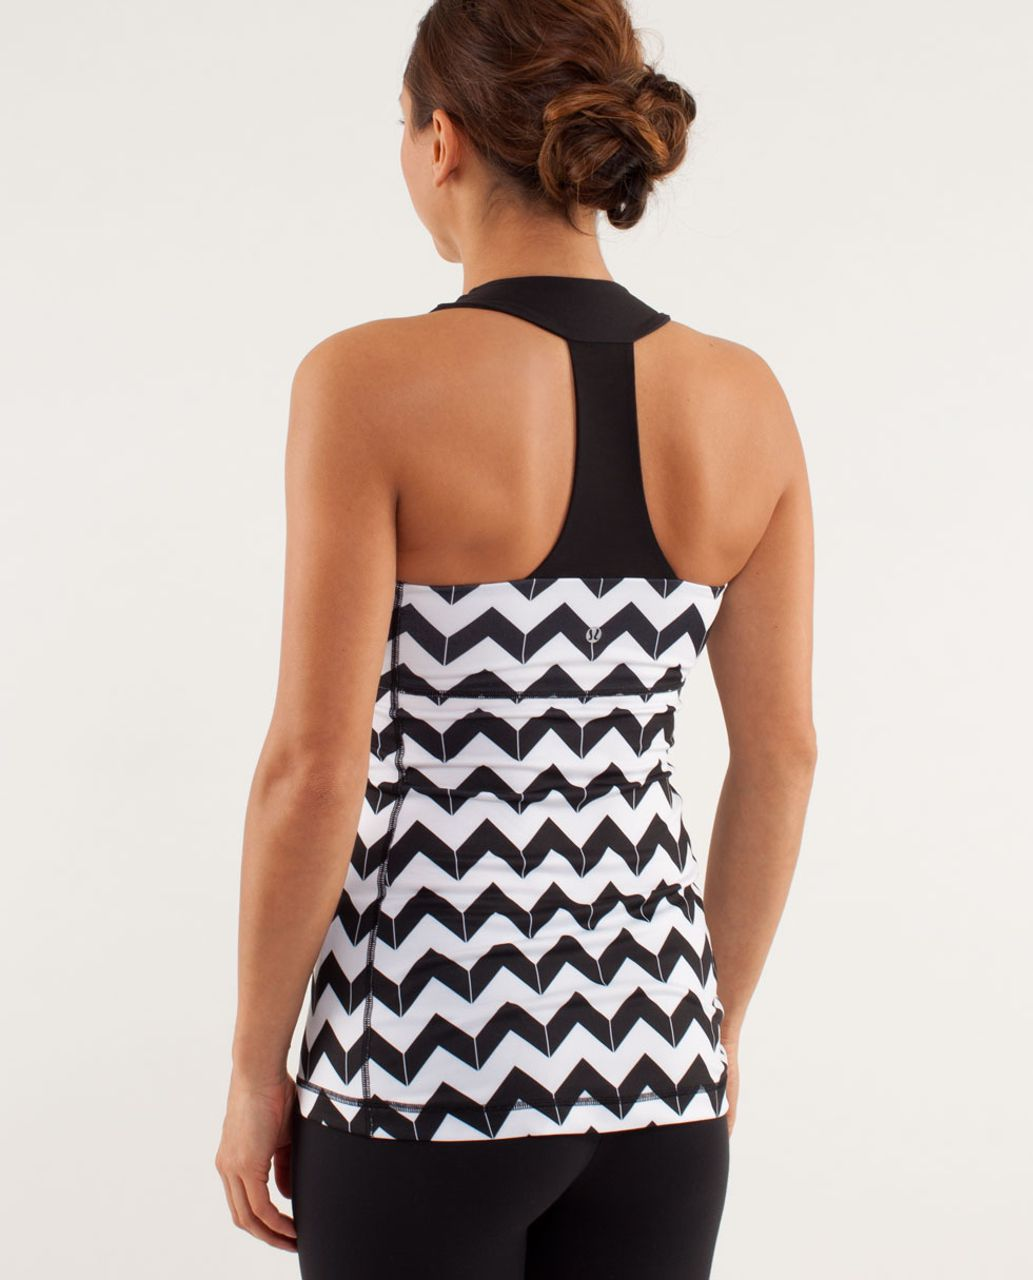 Lululemon Scoop Neck Tank - Arrow Chevron Polar Cream Black / Black